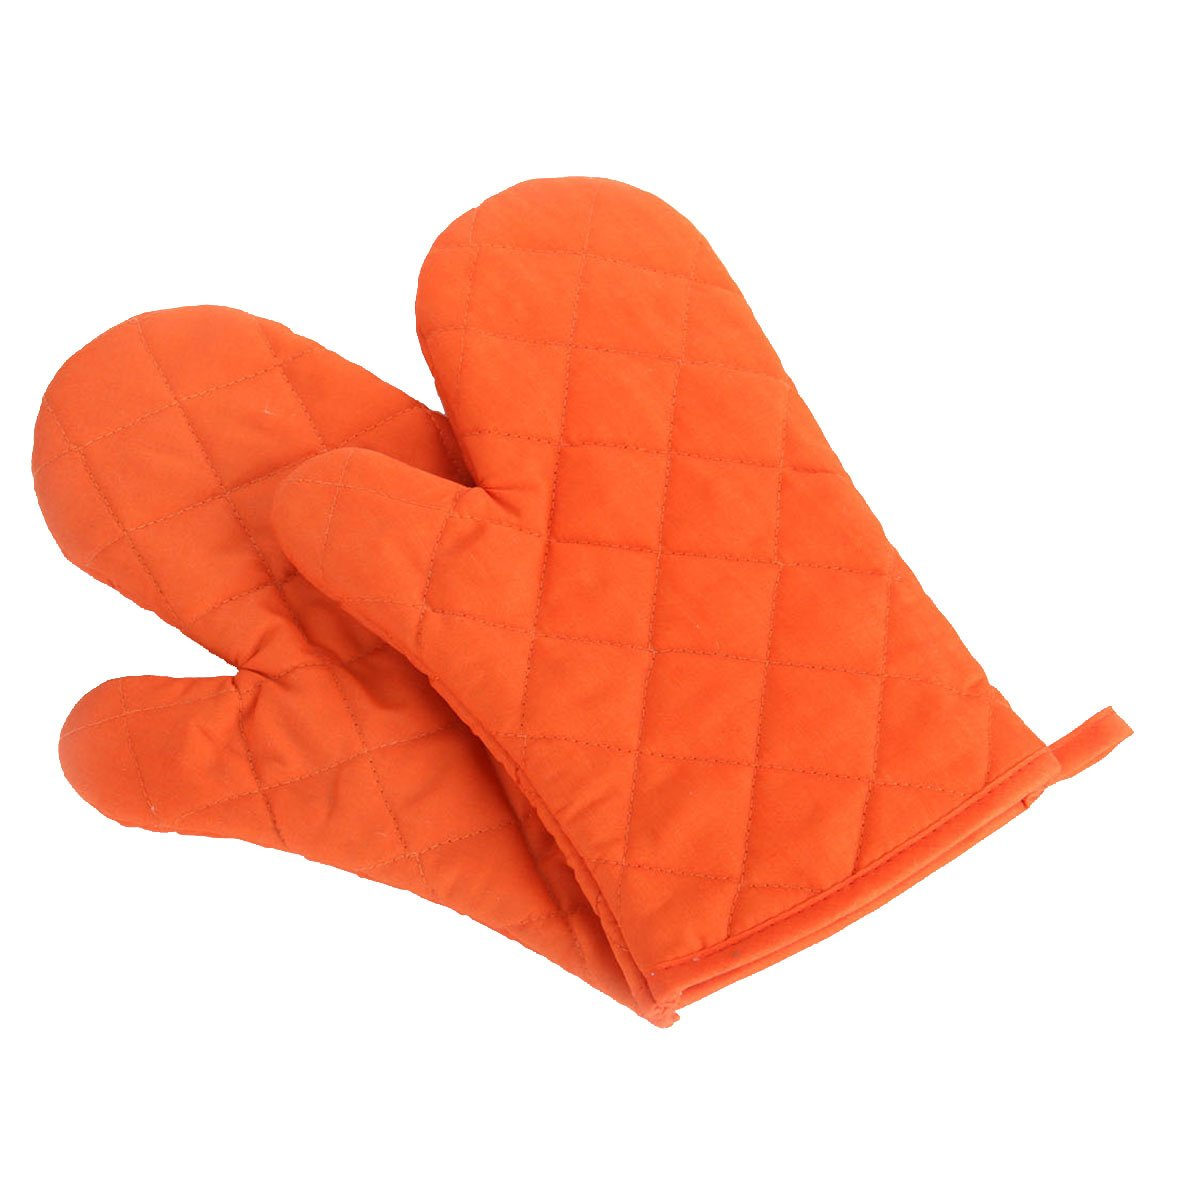 Artmoki Oven Mitts Heat Resistant Baking BBQ Set of 2 Oven Gloves Cooking Grilling High Temperature Hand Protection, 11 X 5.9 Inches - Orange